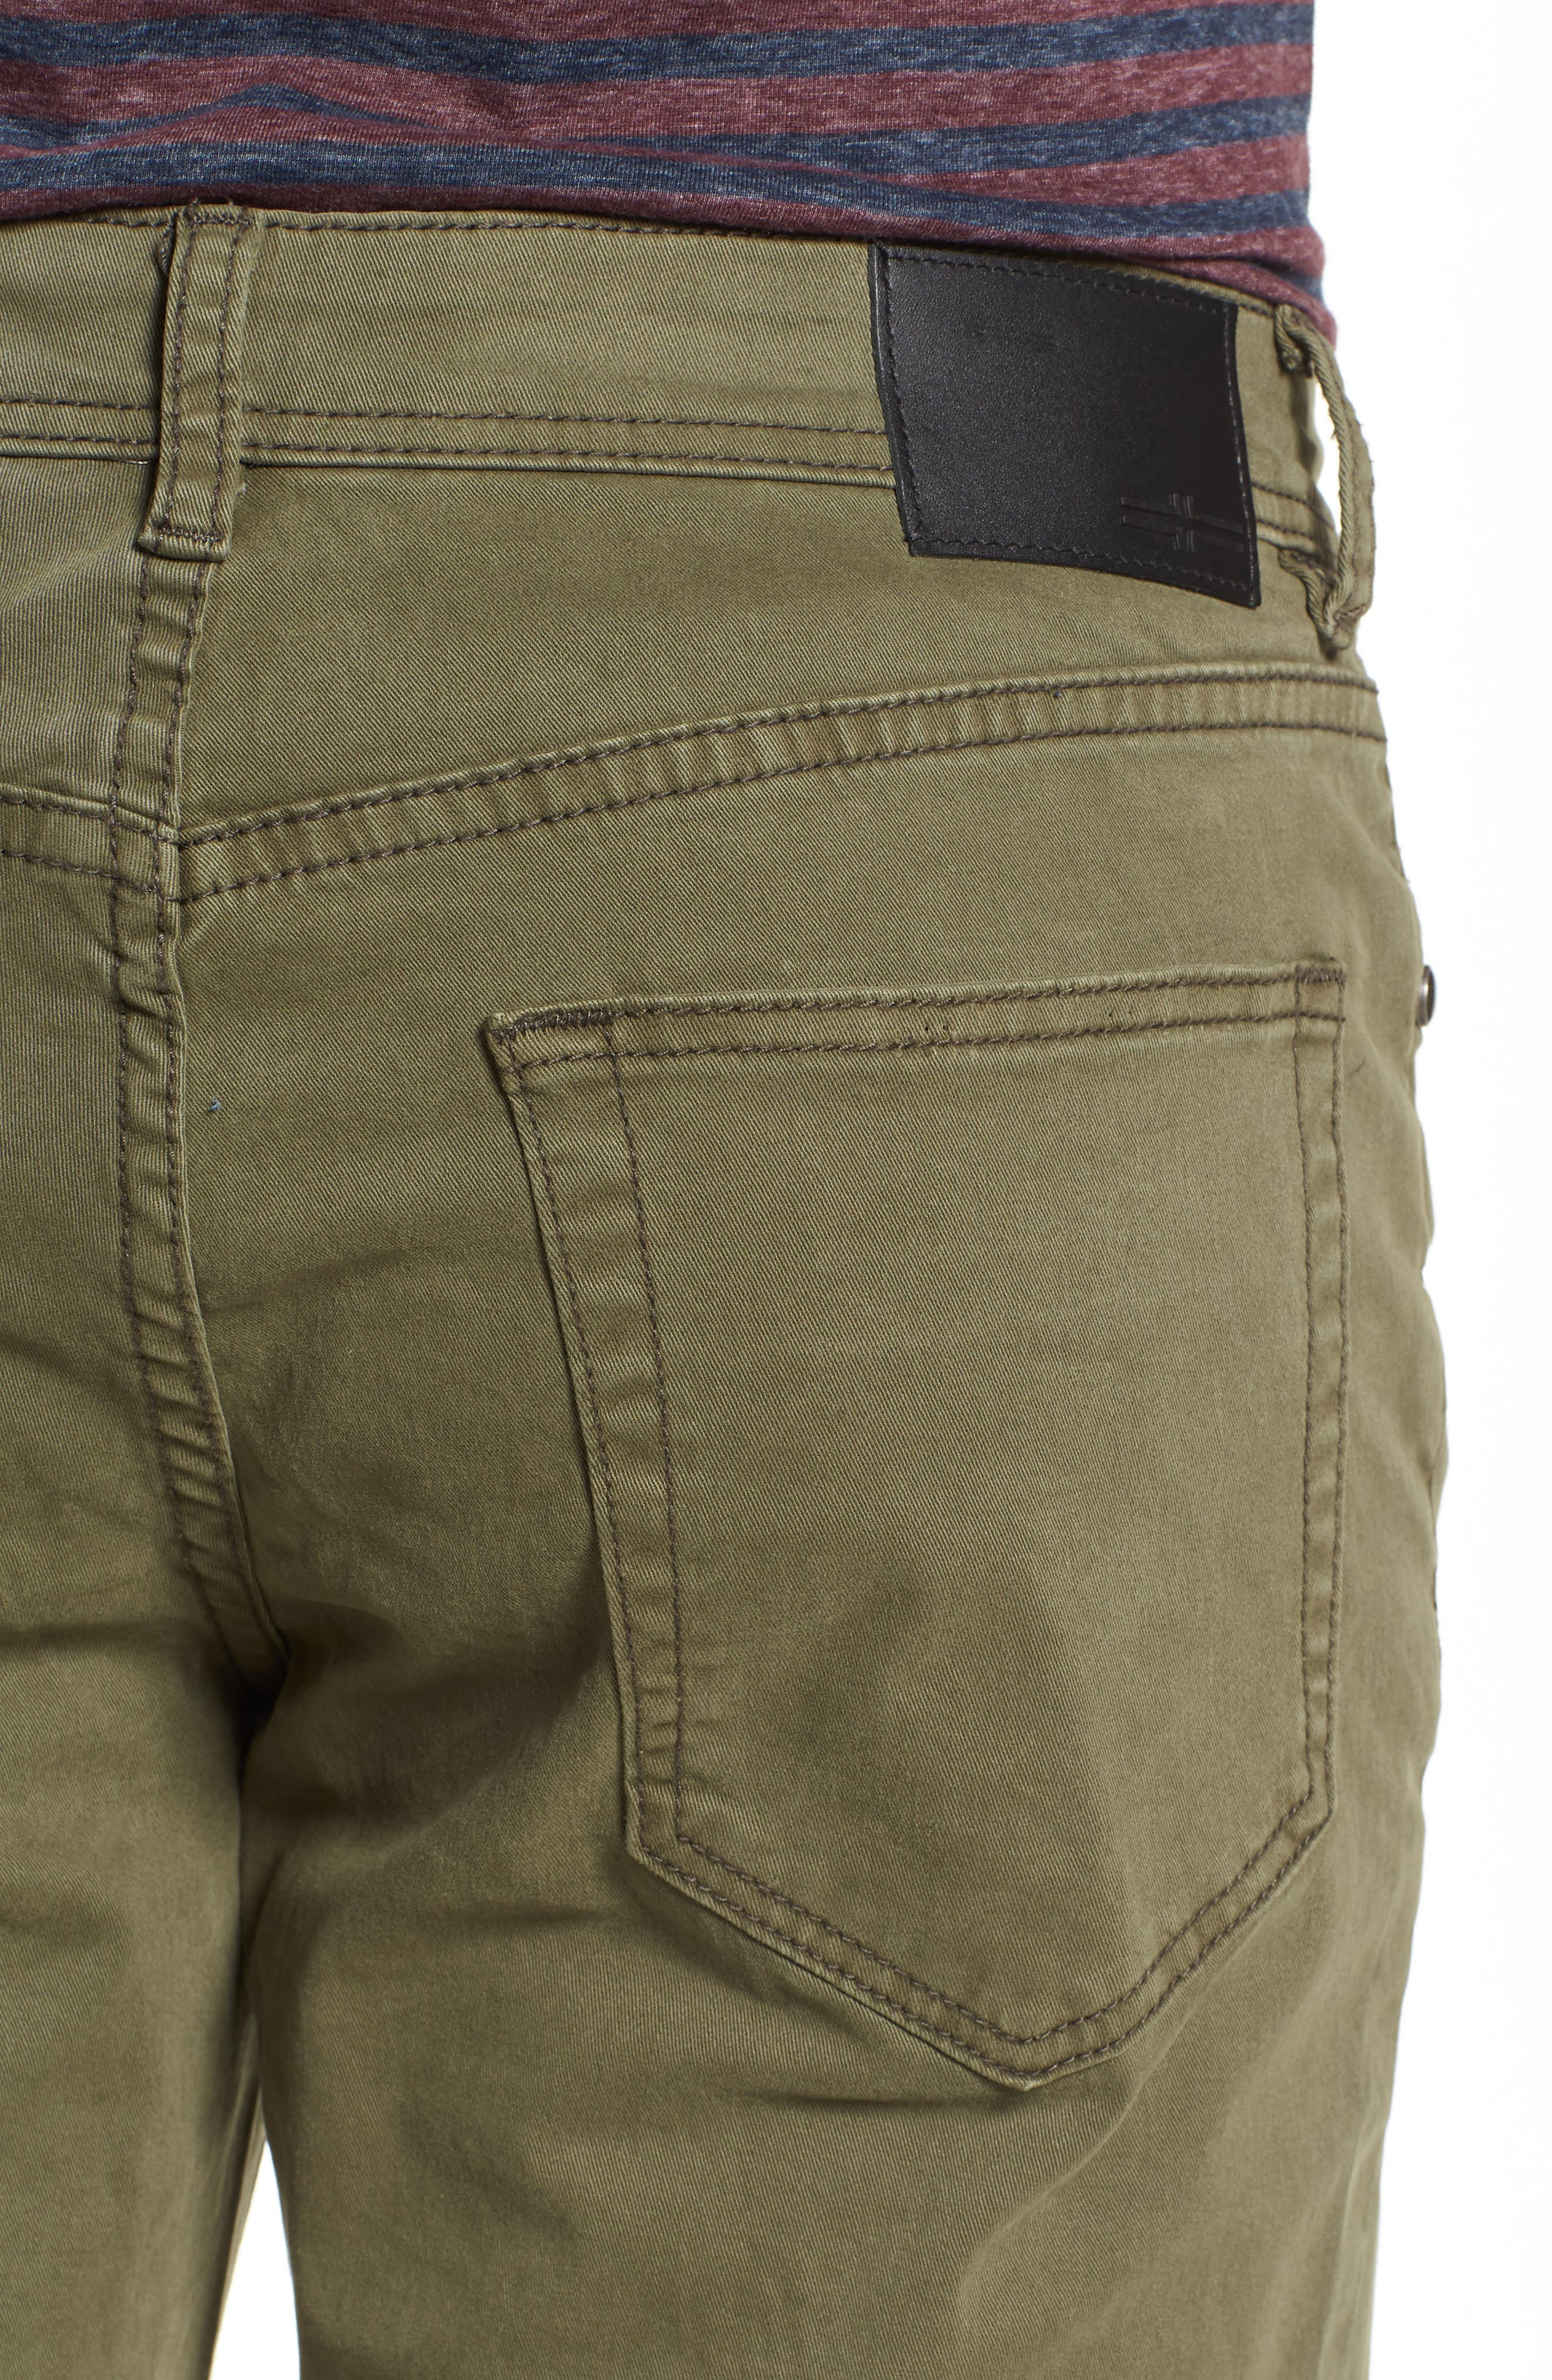 Jeans Co. Regent Relaxed Fit Jeans,                             Alternate thumbnail 4, color,                             Olive Night